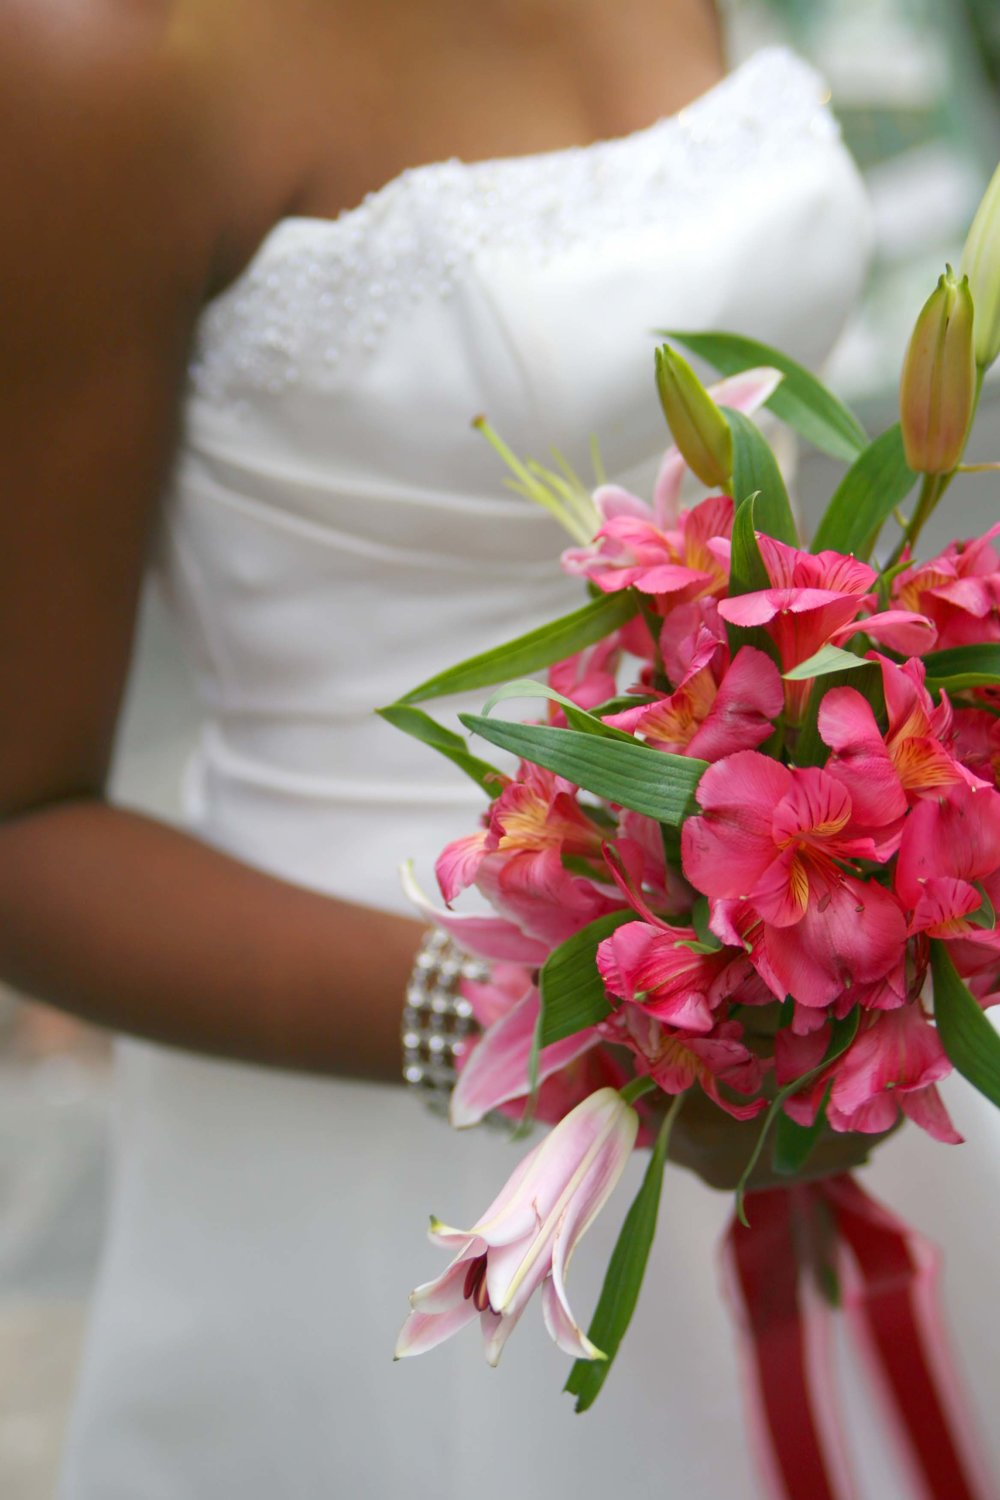 It's fast, easy, and free to deliver your bouquet for flower preservation from the Williston, ND area. Get started today! Call 701-400-6162.